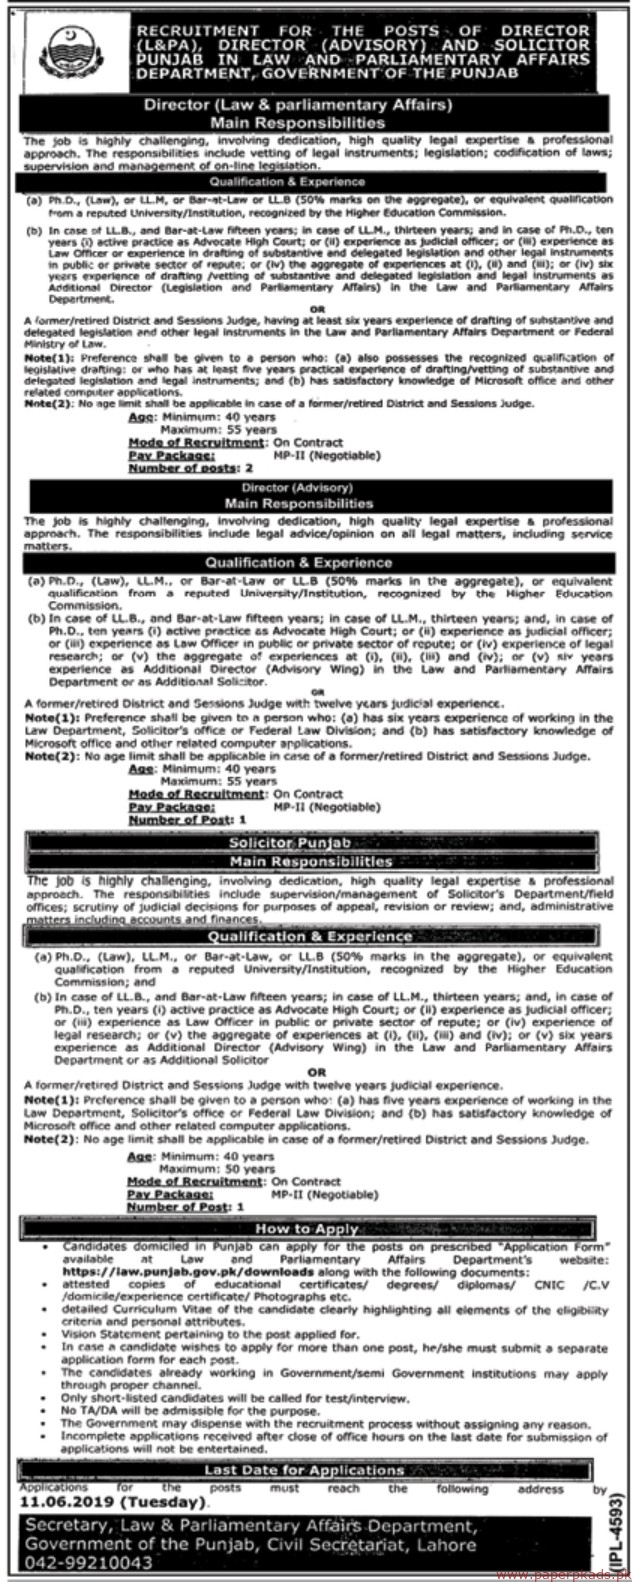 Government of the Punjab - Law and Parliamentary Affairs Department Jobs 2019 Latest